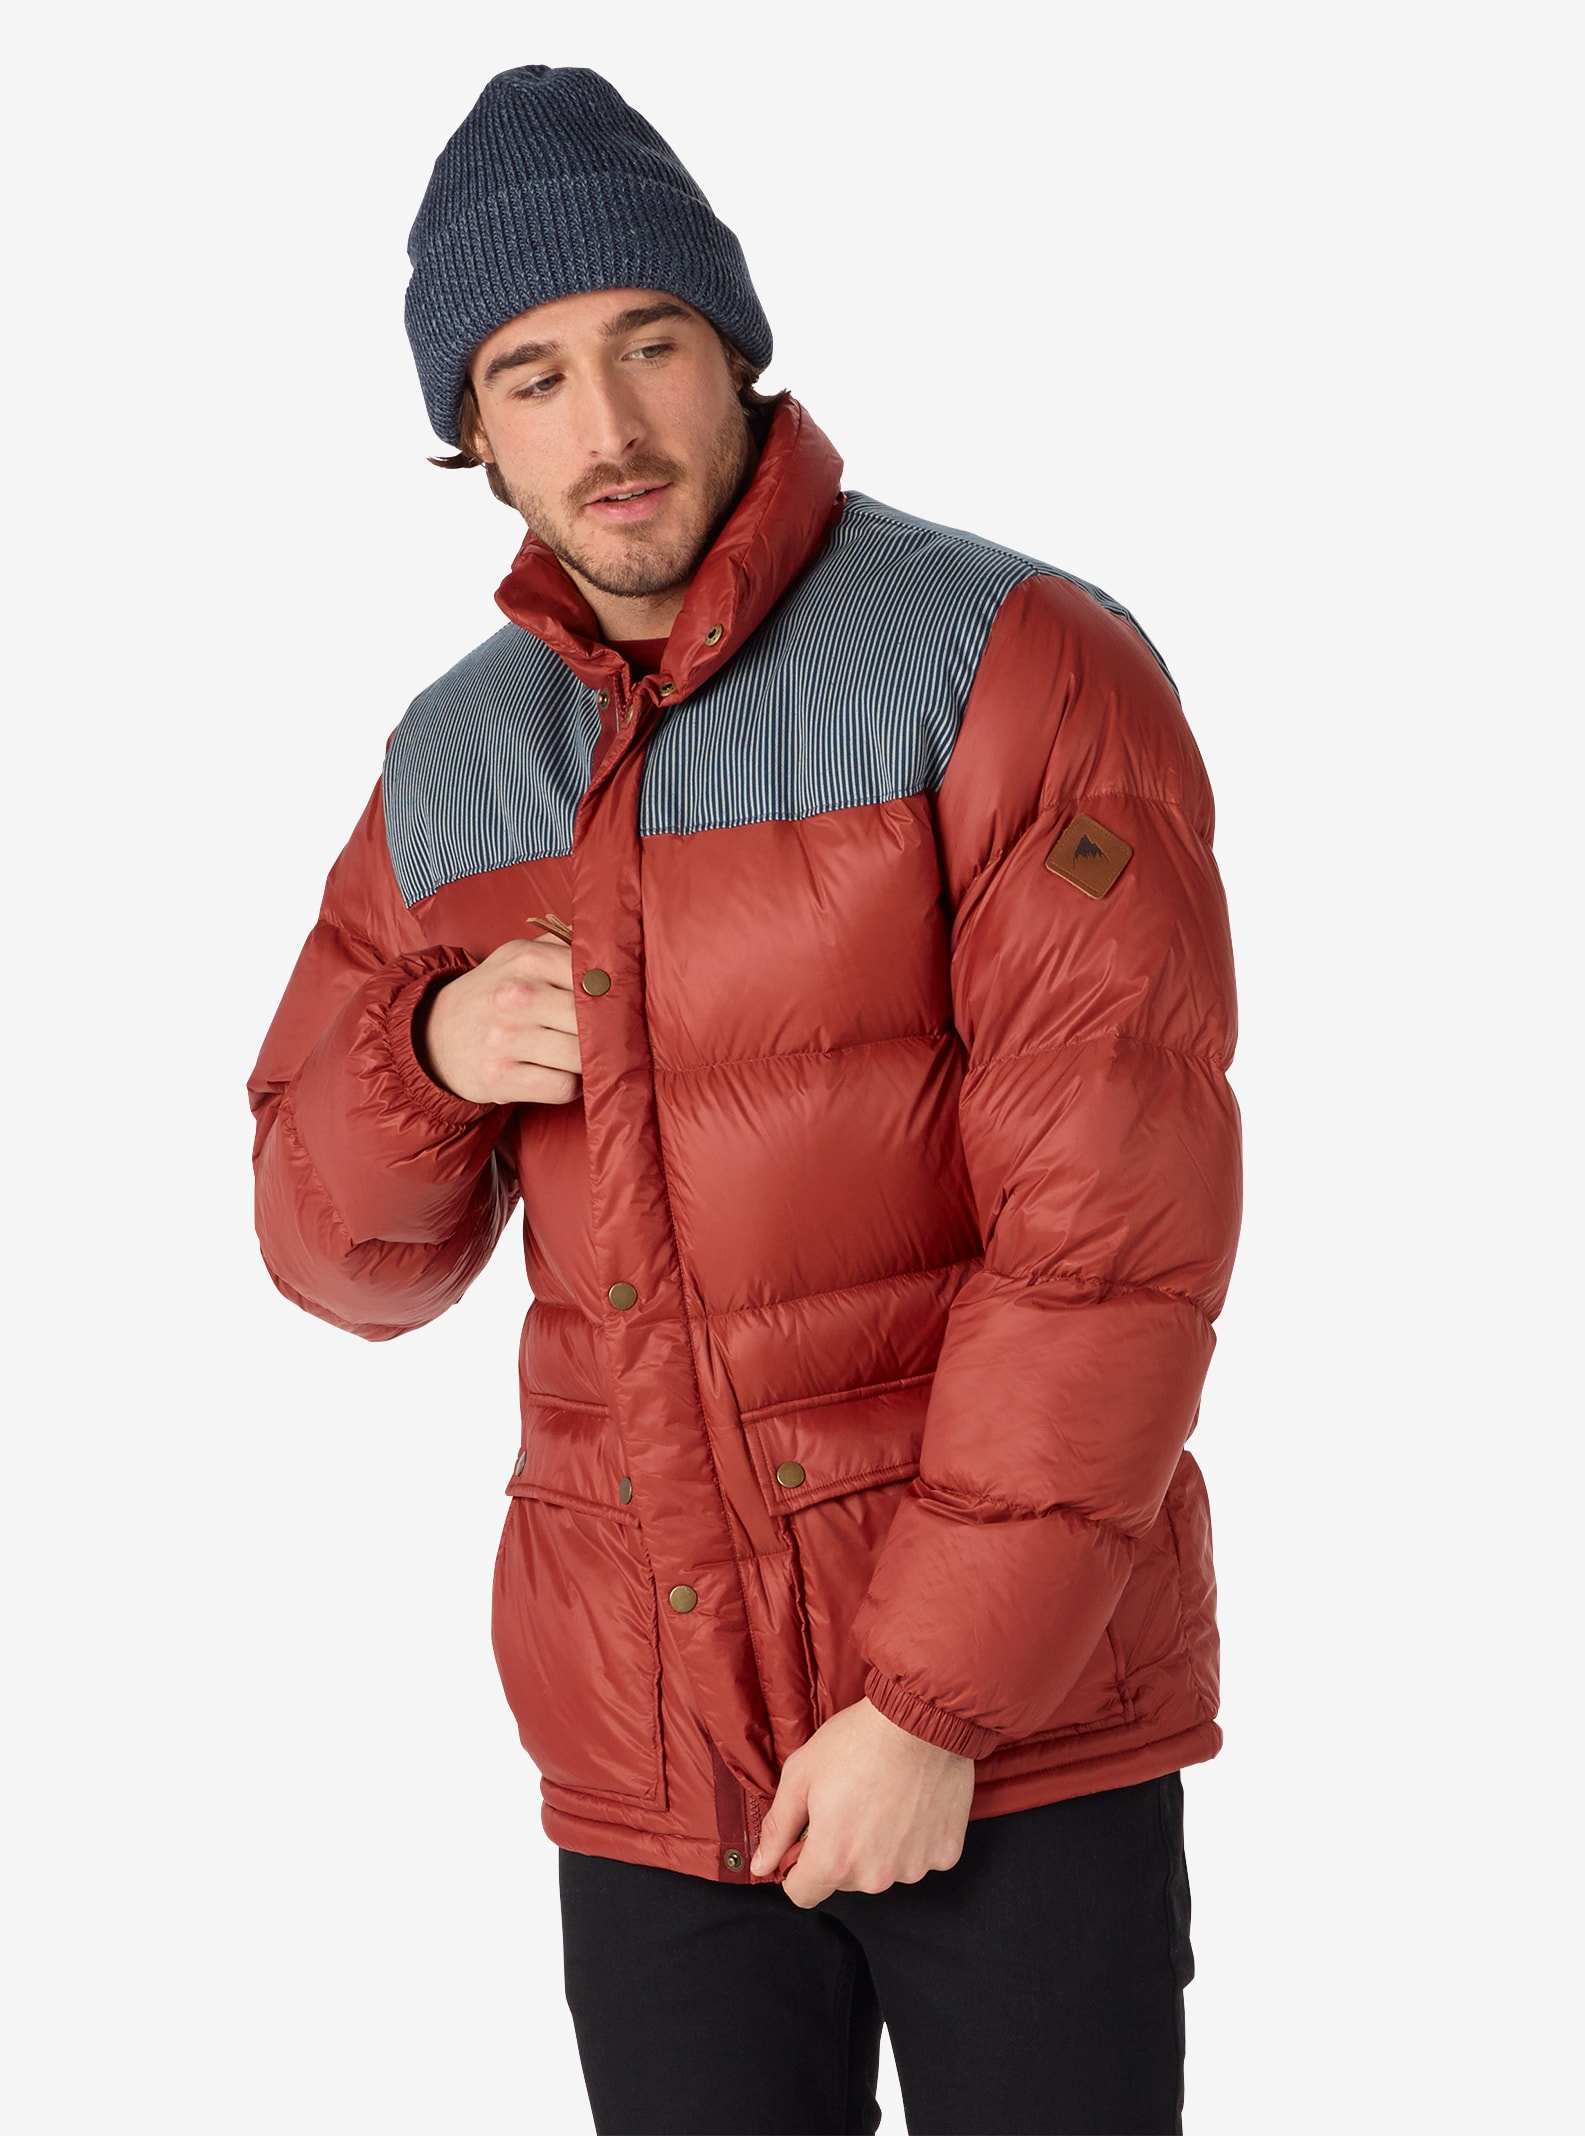 Men's Burton Heritage Collared Down Jacket shown in Railroad / Fired Brick